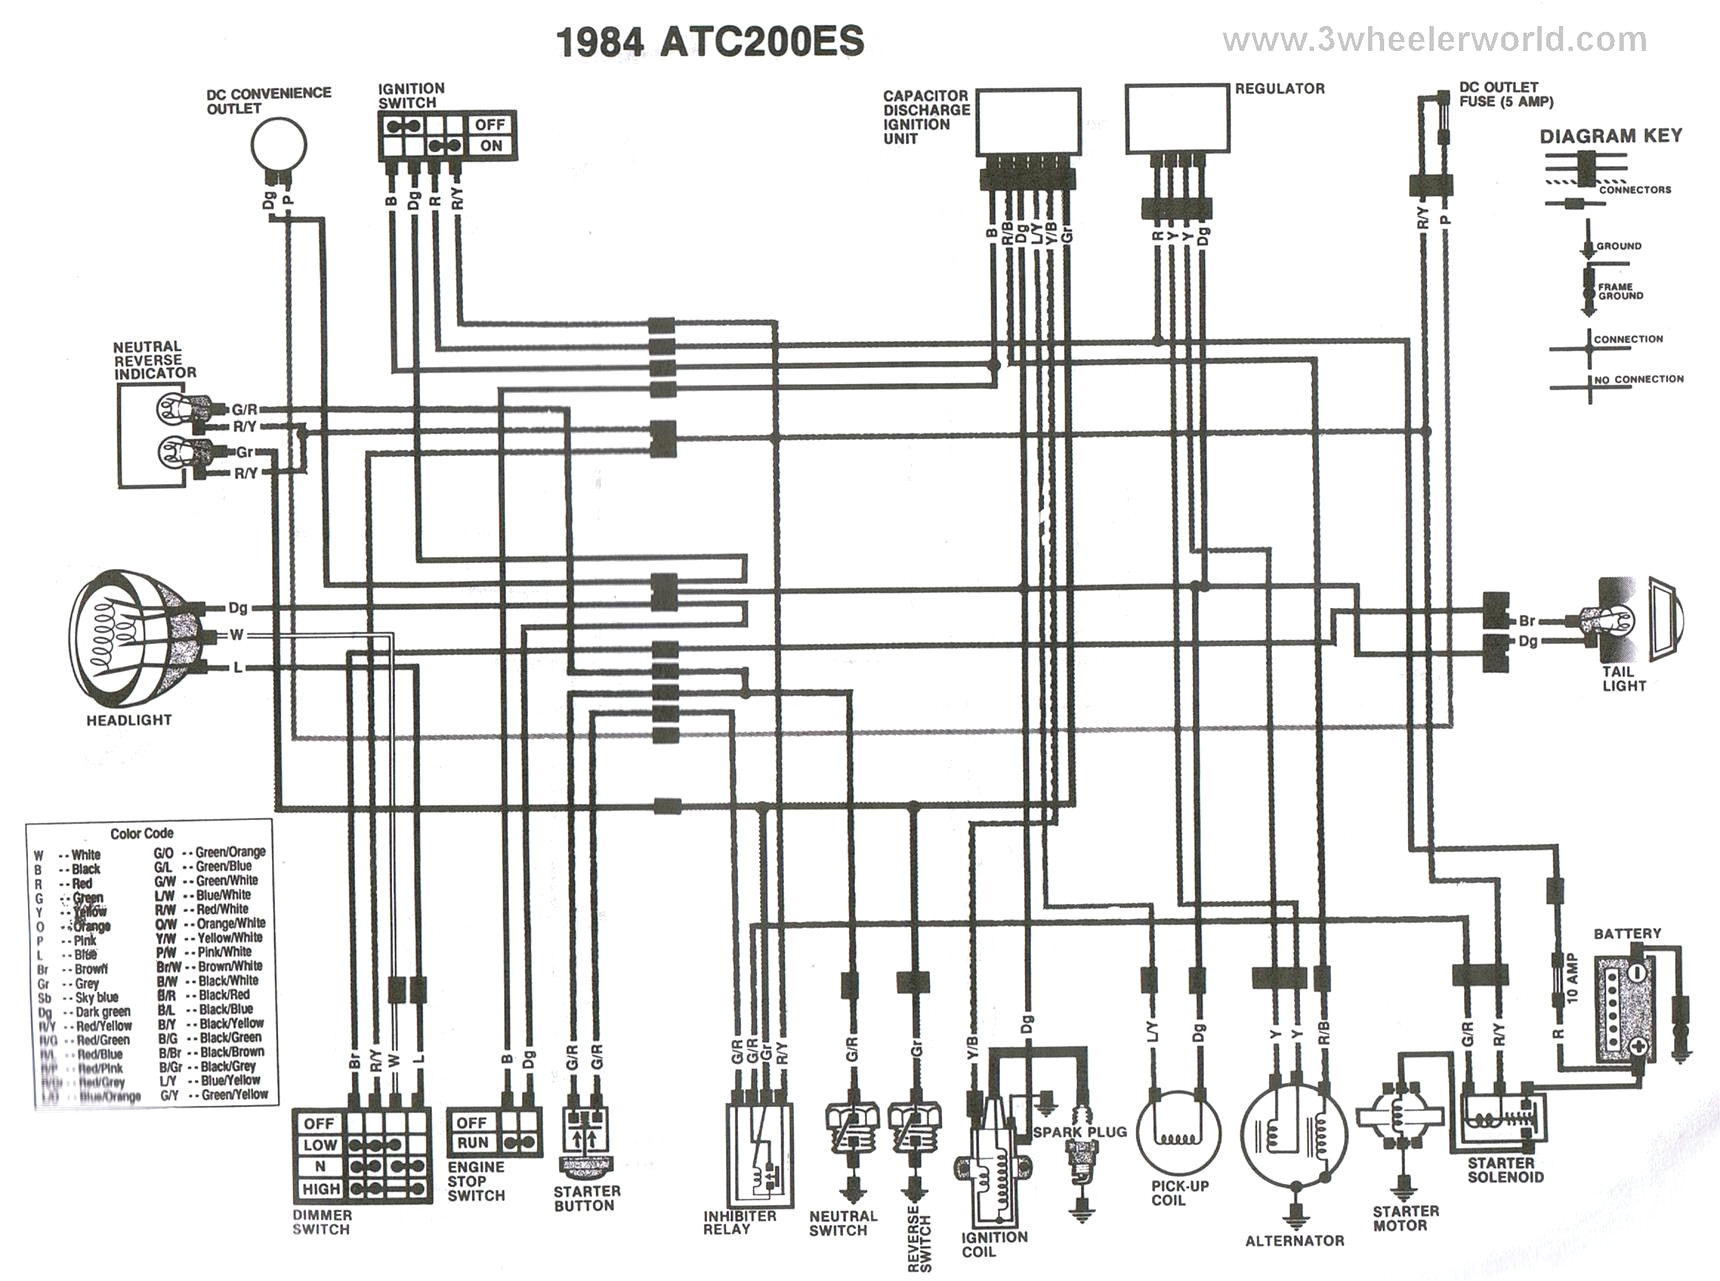 2005 Honda 300ex Engine Diagram